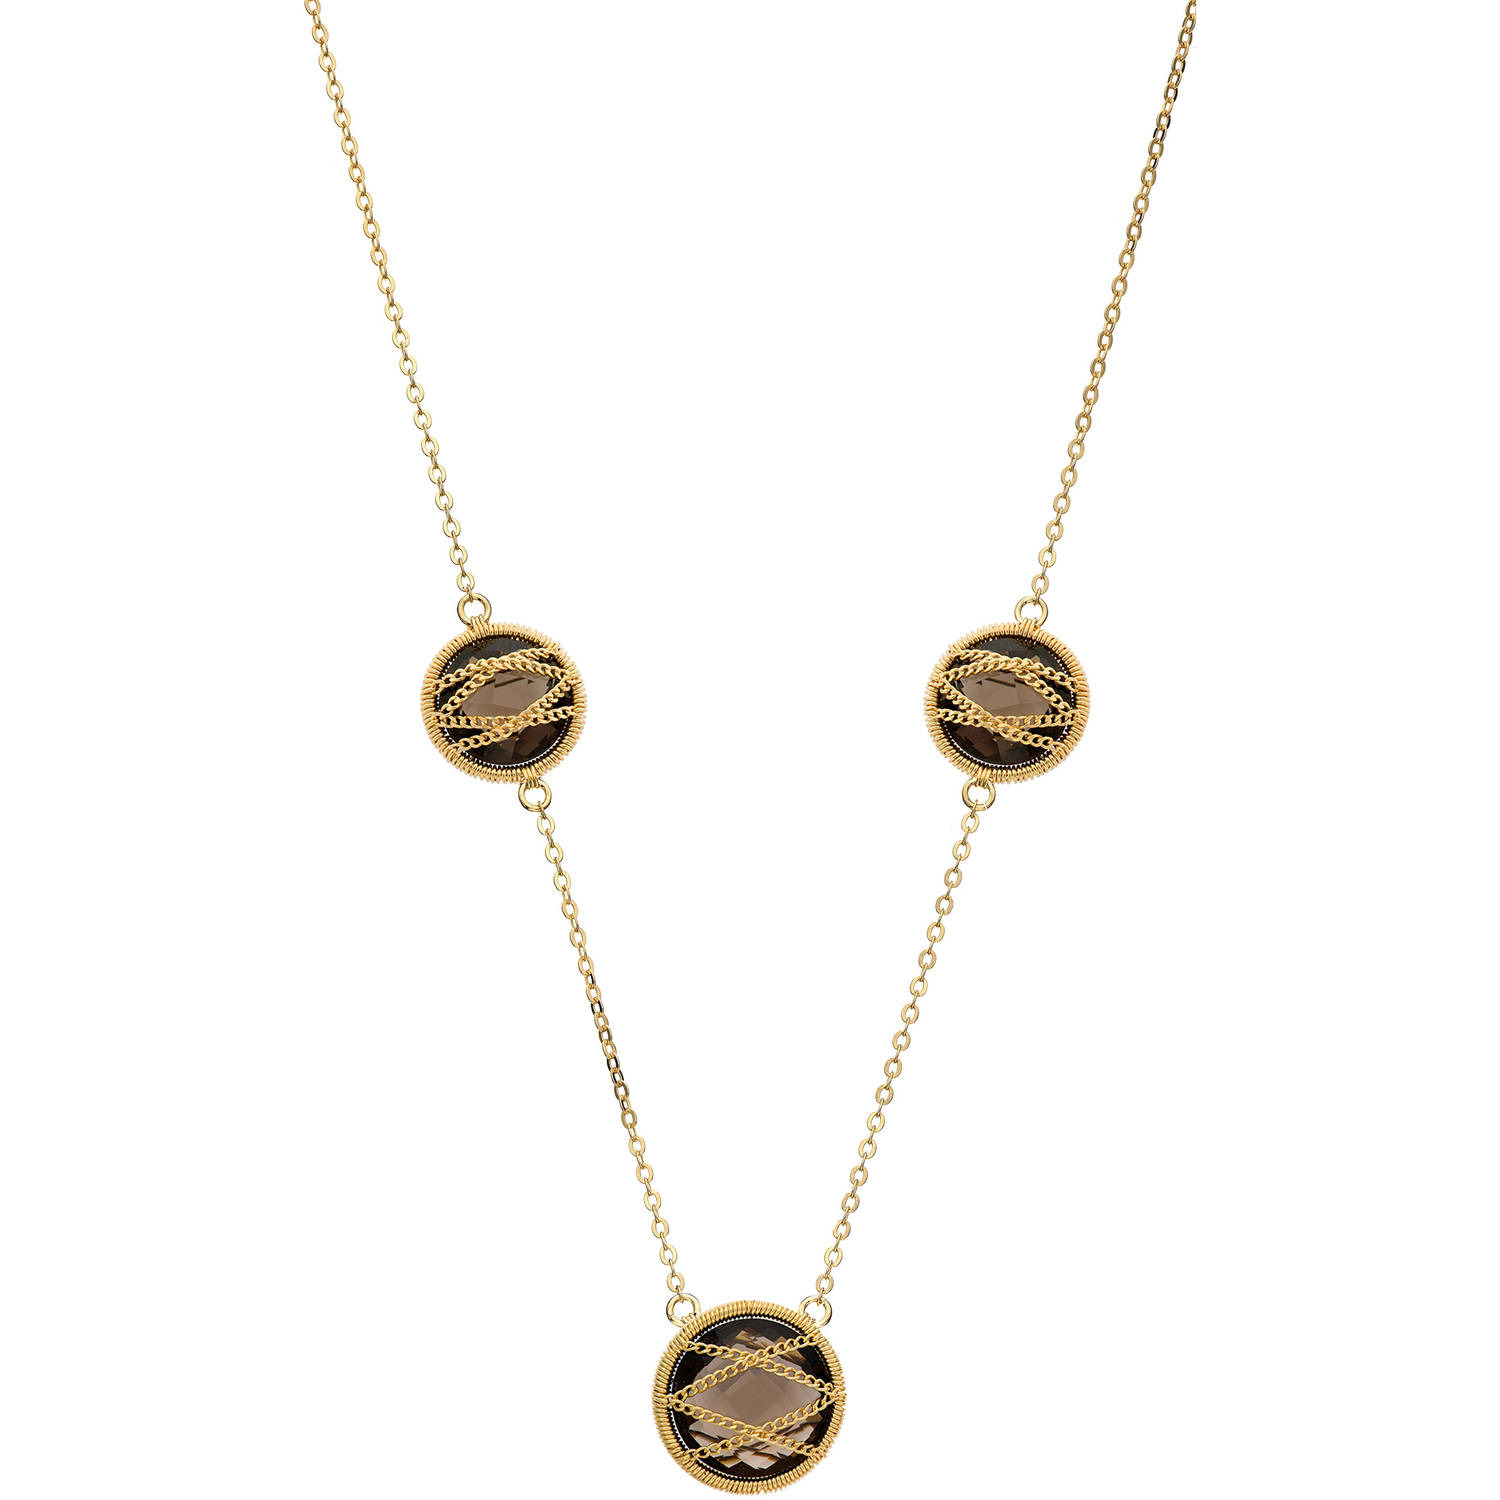 Image of 5th & Main 18kt Gold over Sterling Silver Hand-Wrapped Triple Round Smokey Quartz Stone Necklace